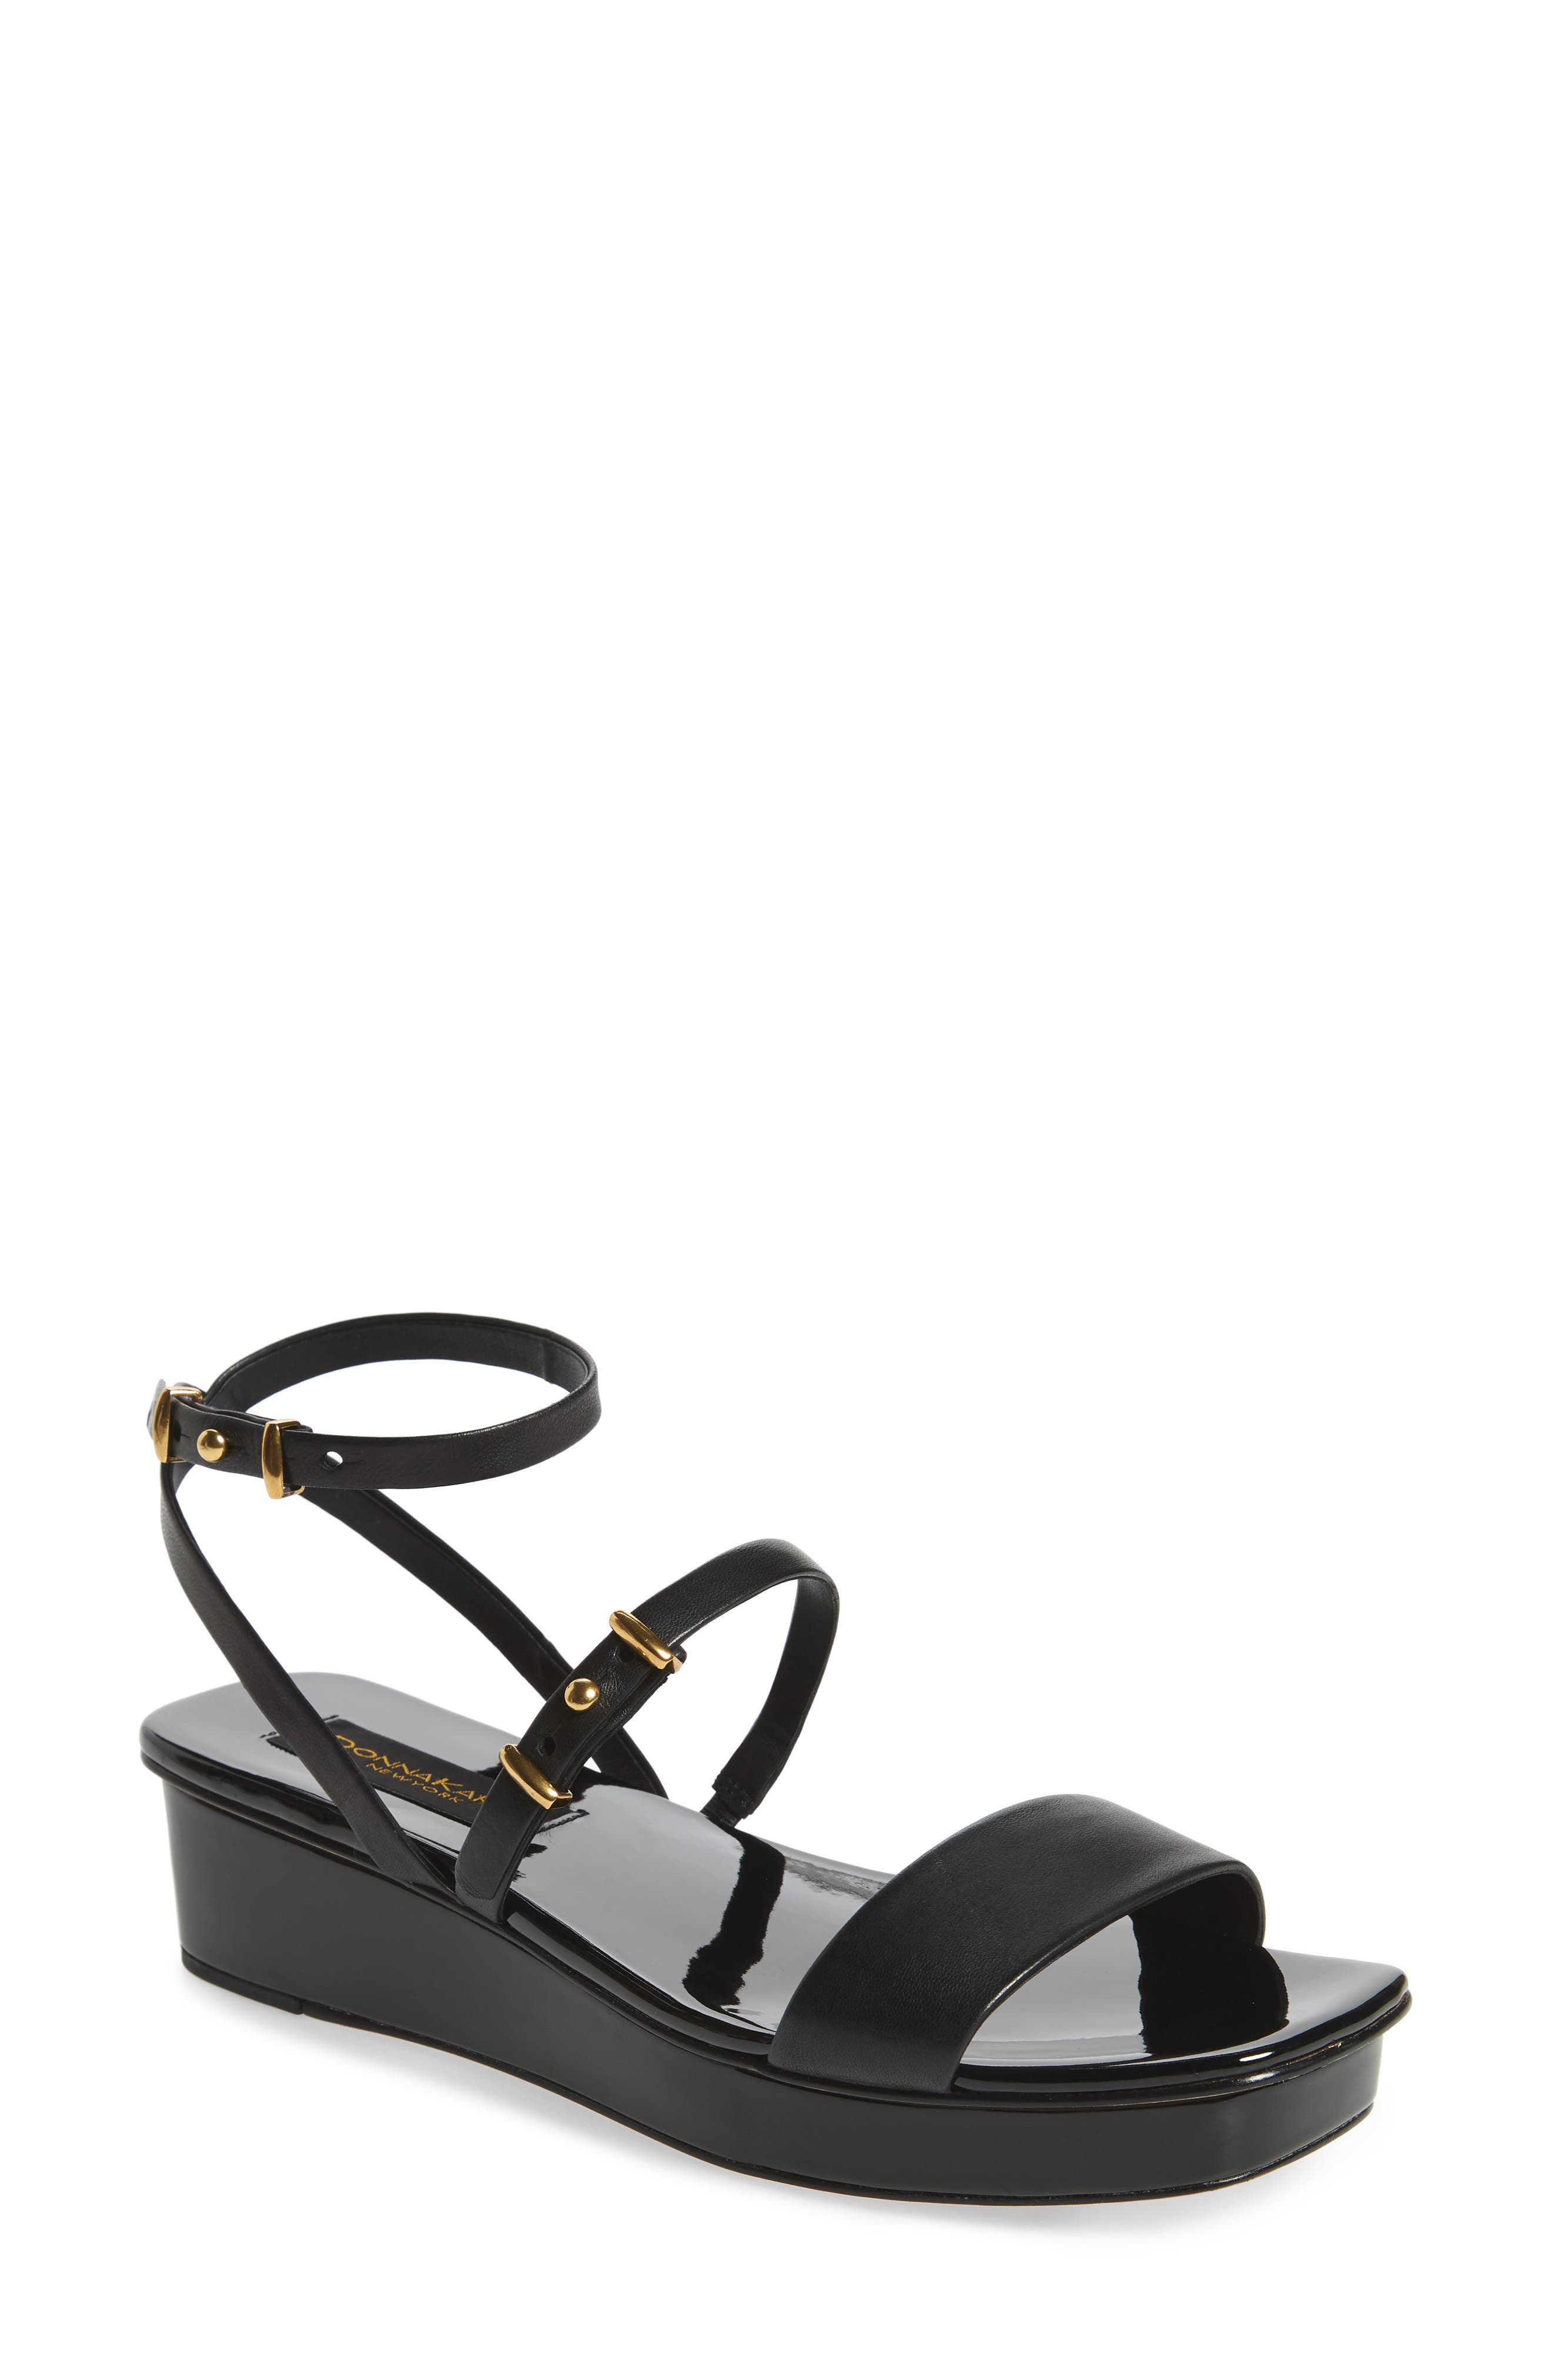 Ankle Strap Wedge Sandal,                         Main,                         color,